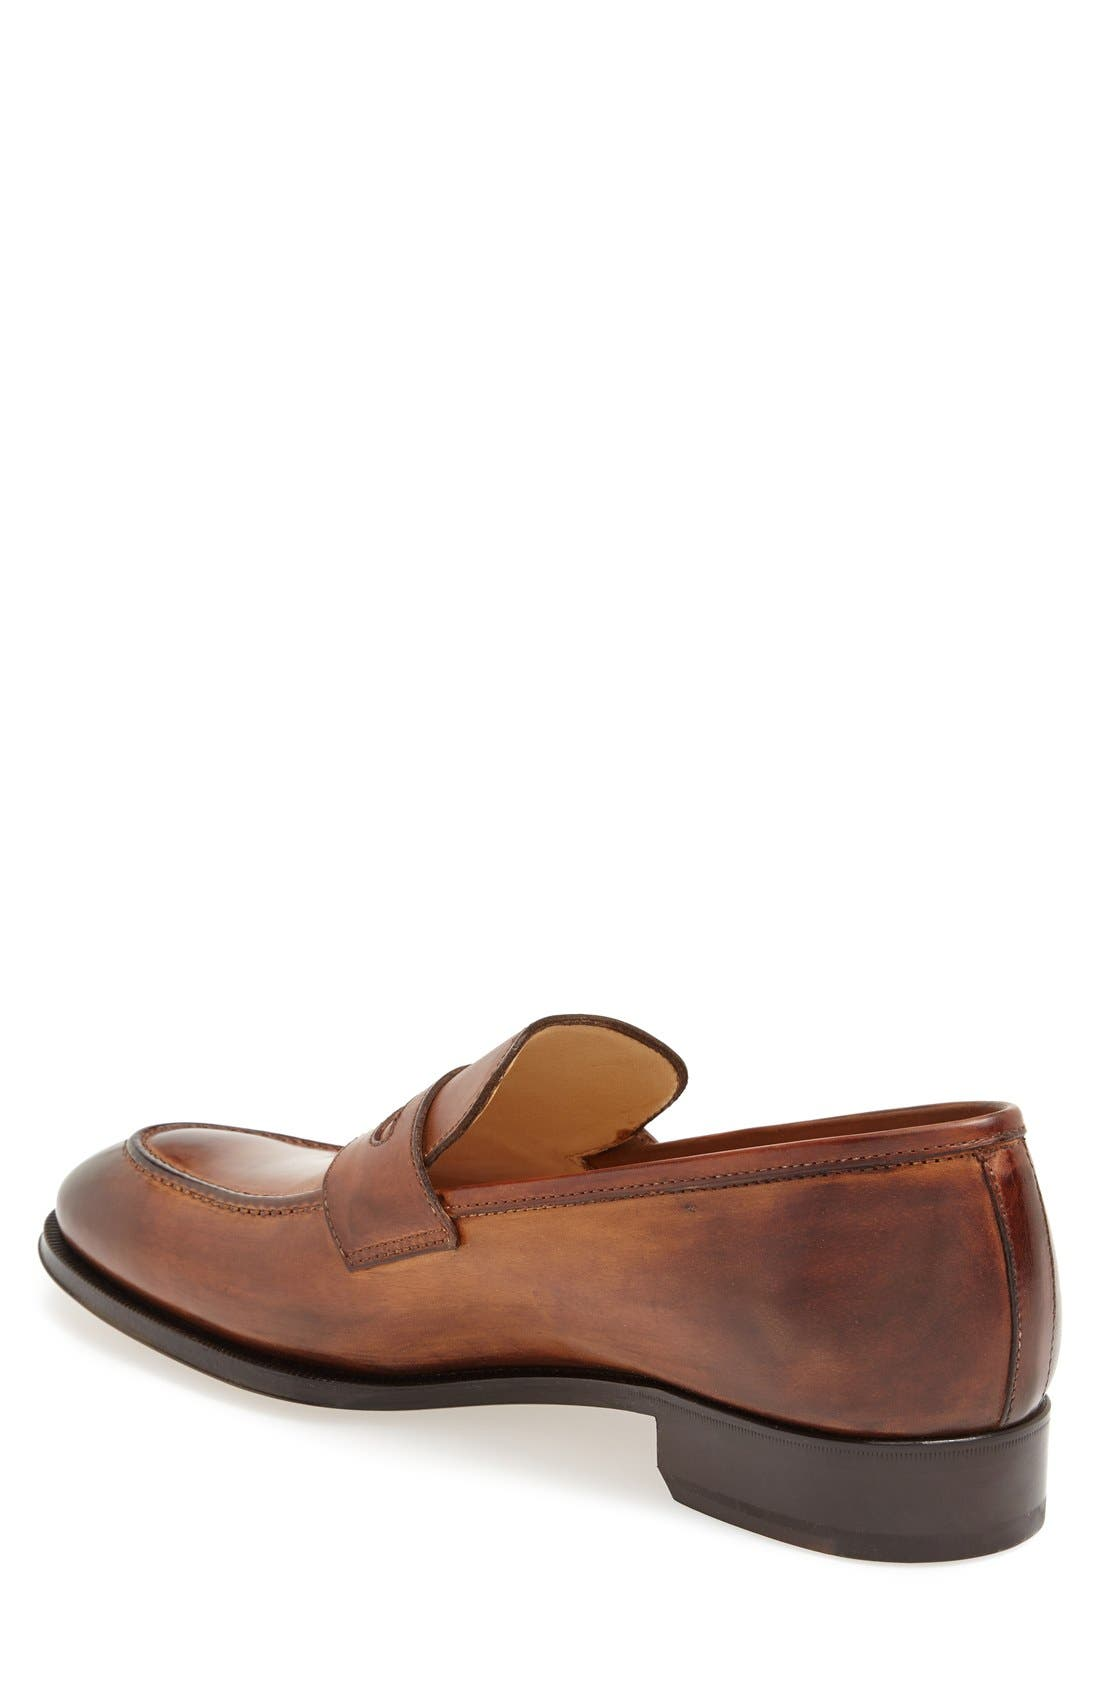 Leather Penny Loafer,                             Alternate thumbnail 13, color,